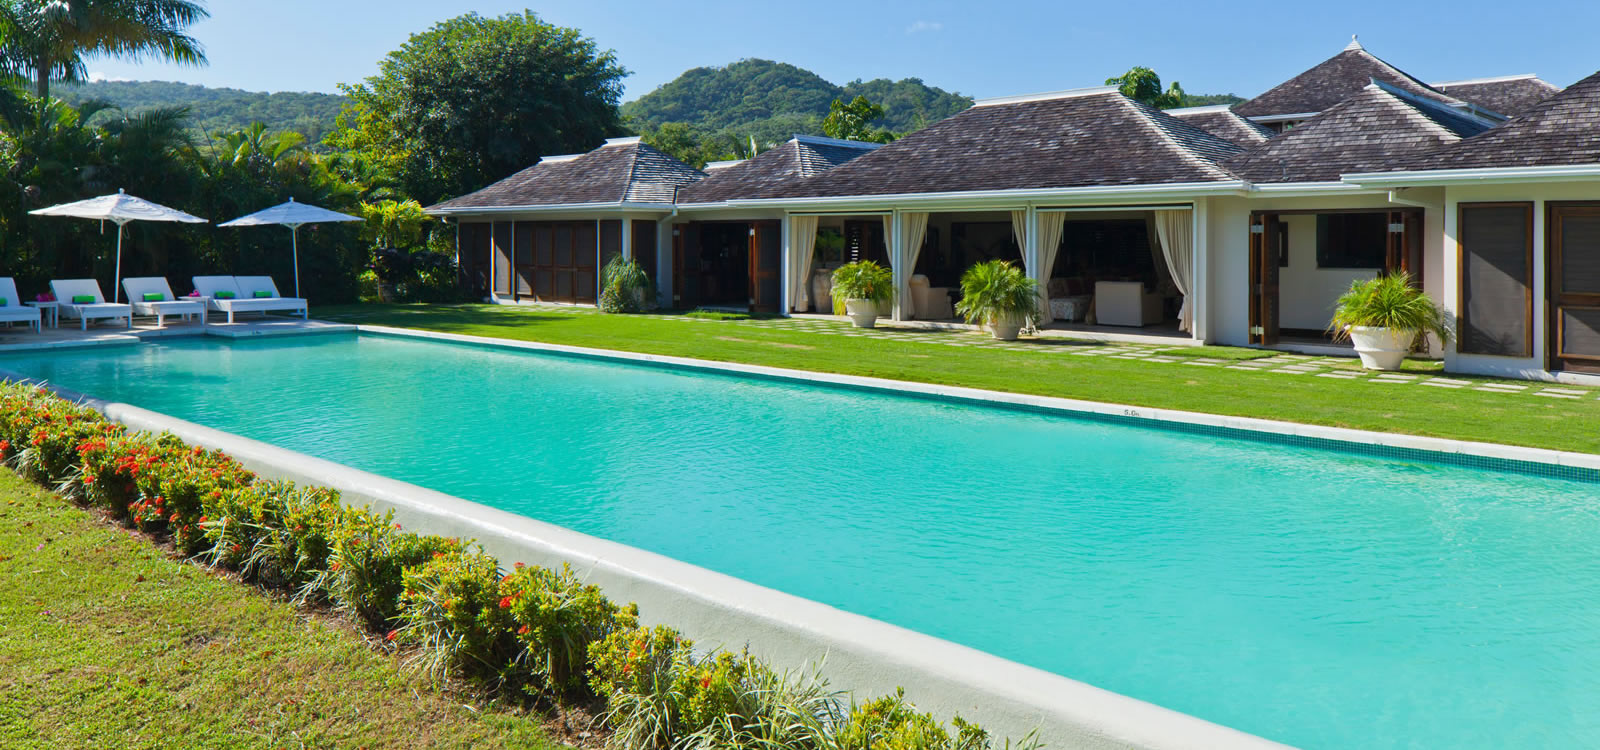 Awesome 6 Bedroom Luxury Home For Sale, Tryall Club, Hanover, Jamaica